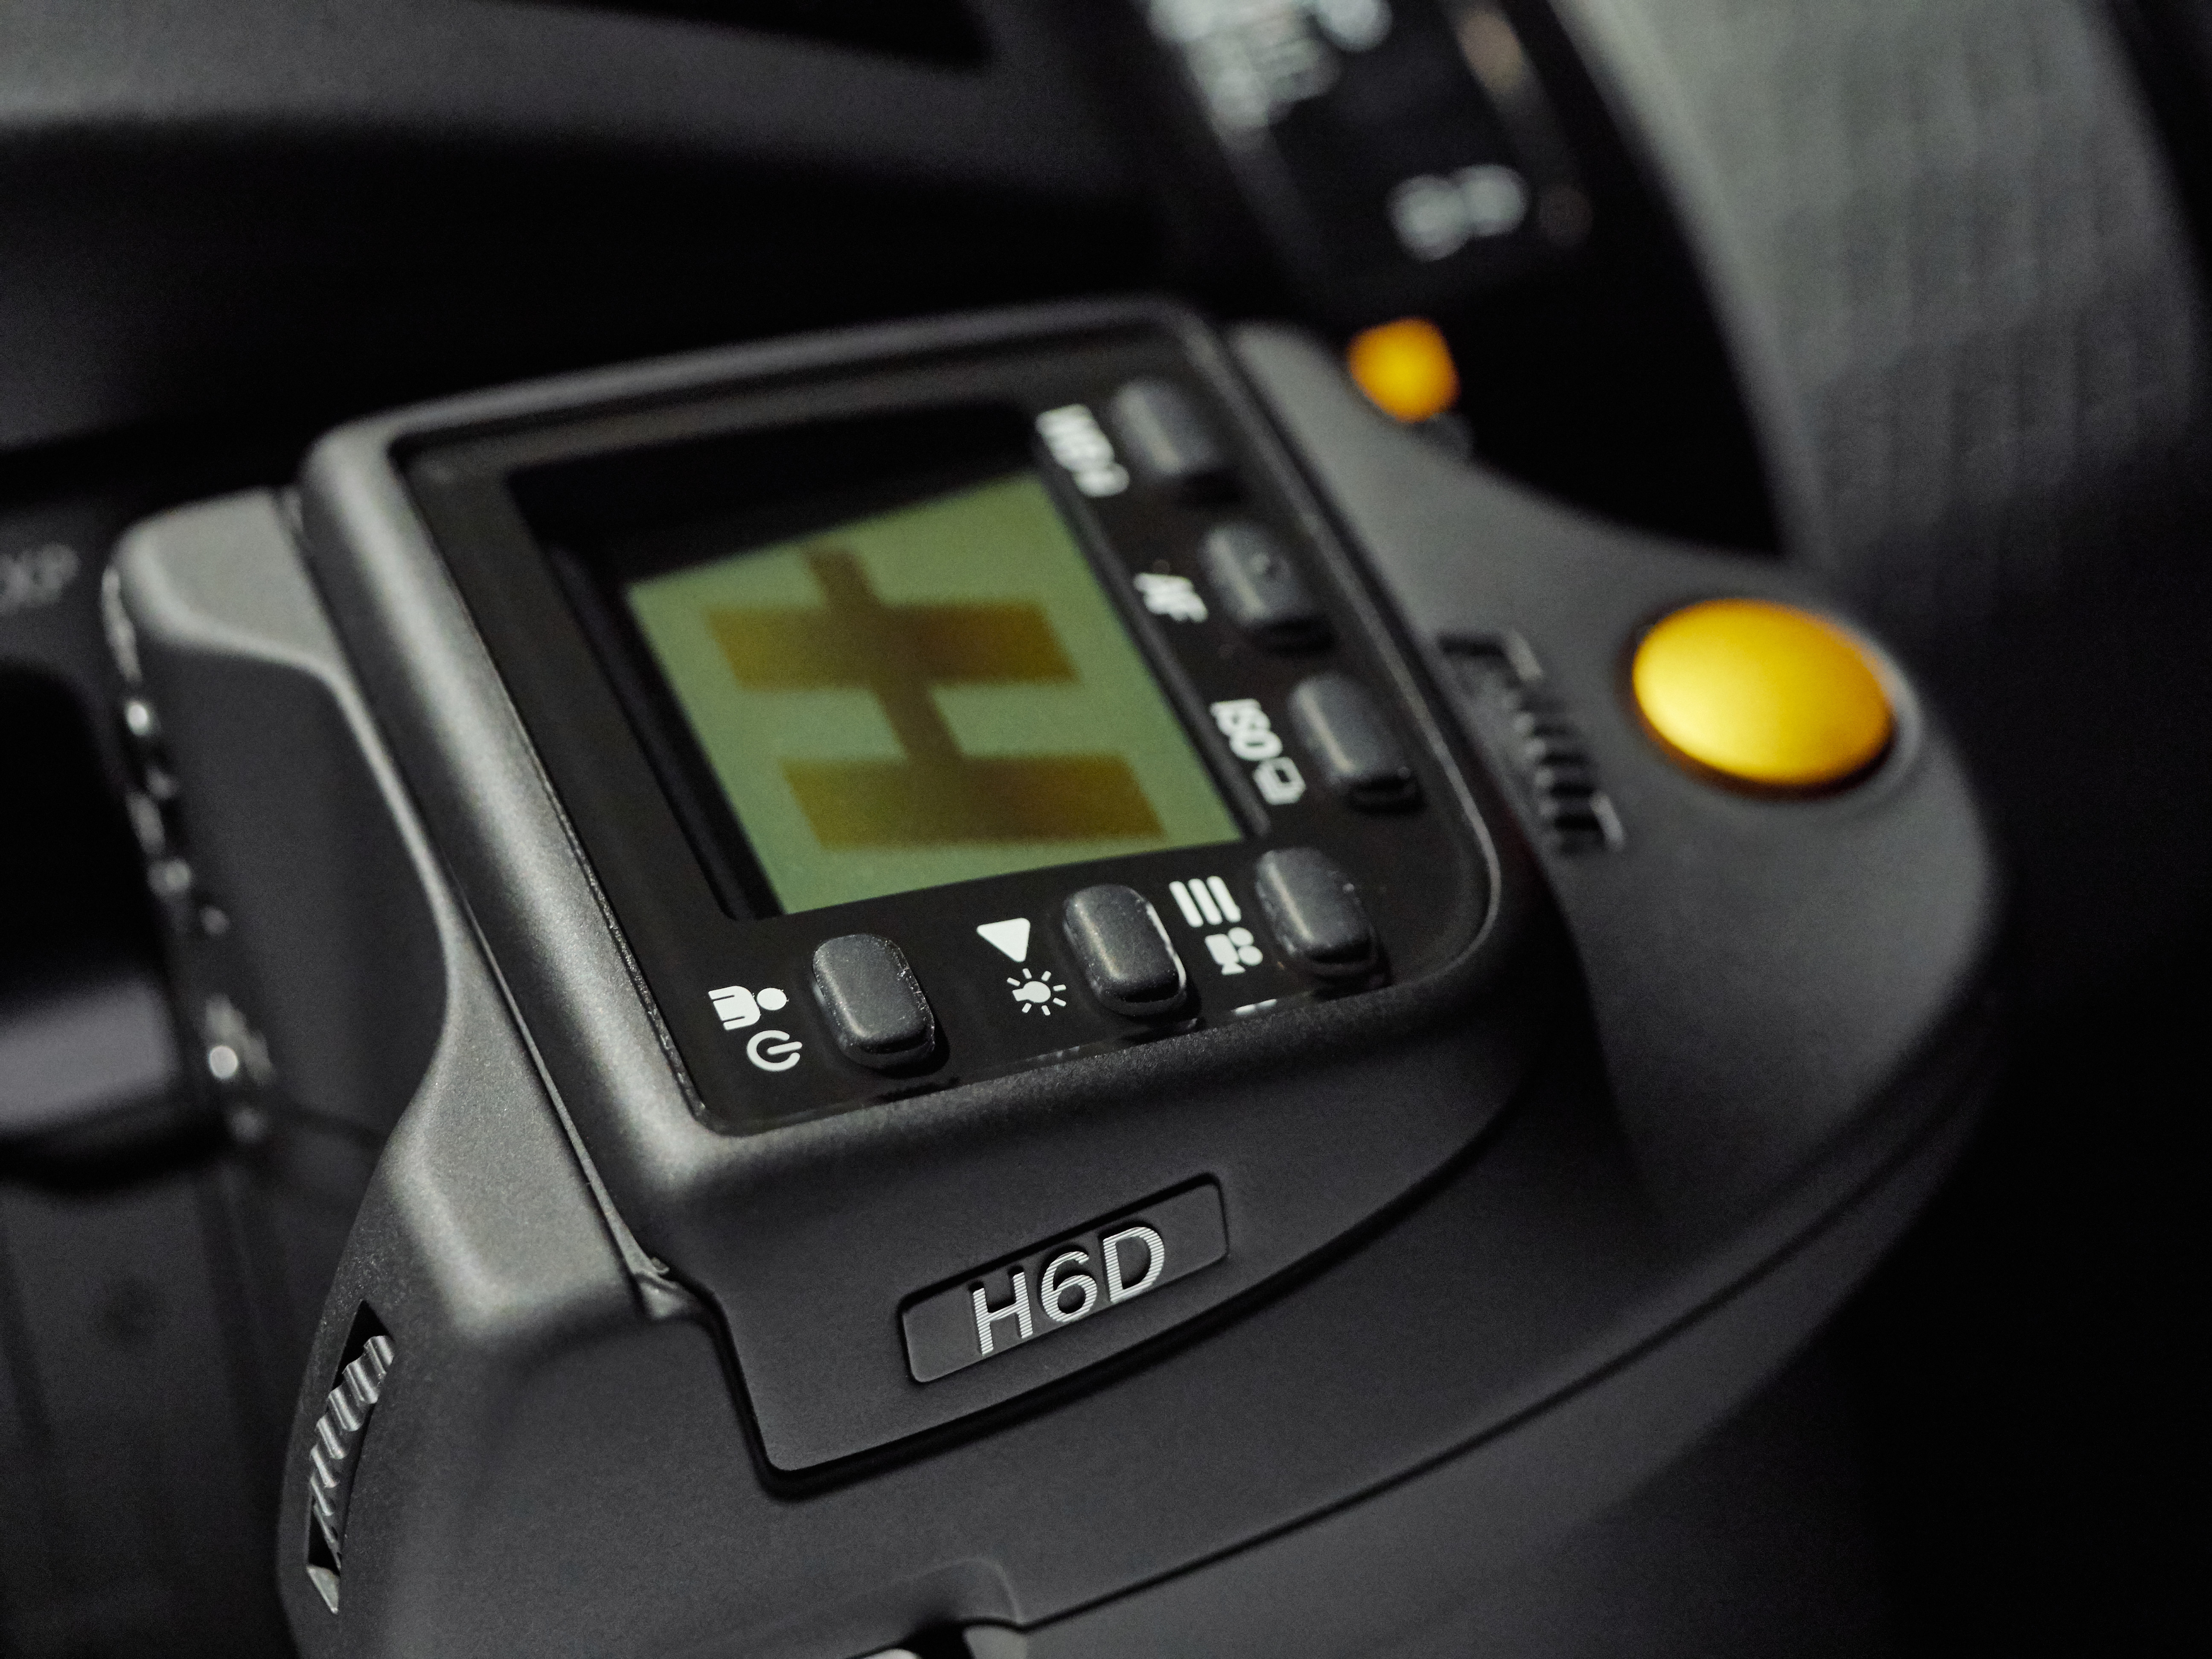 Hands On With The Hasselblad H6d 50c 100c Digital Photography Review 1100 Special Field World39s Largest Supplier Of Firearm Accessories